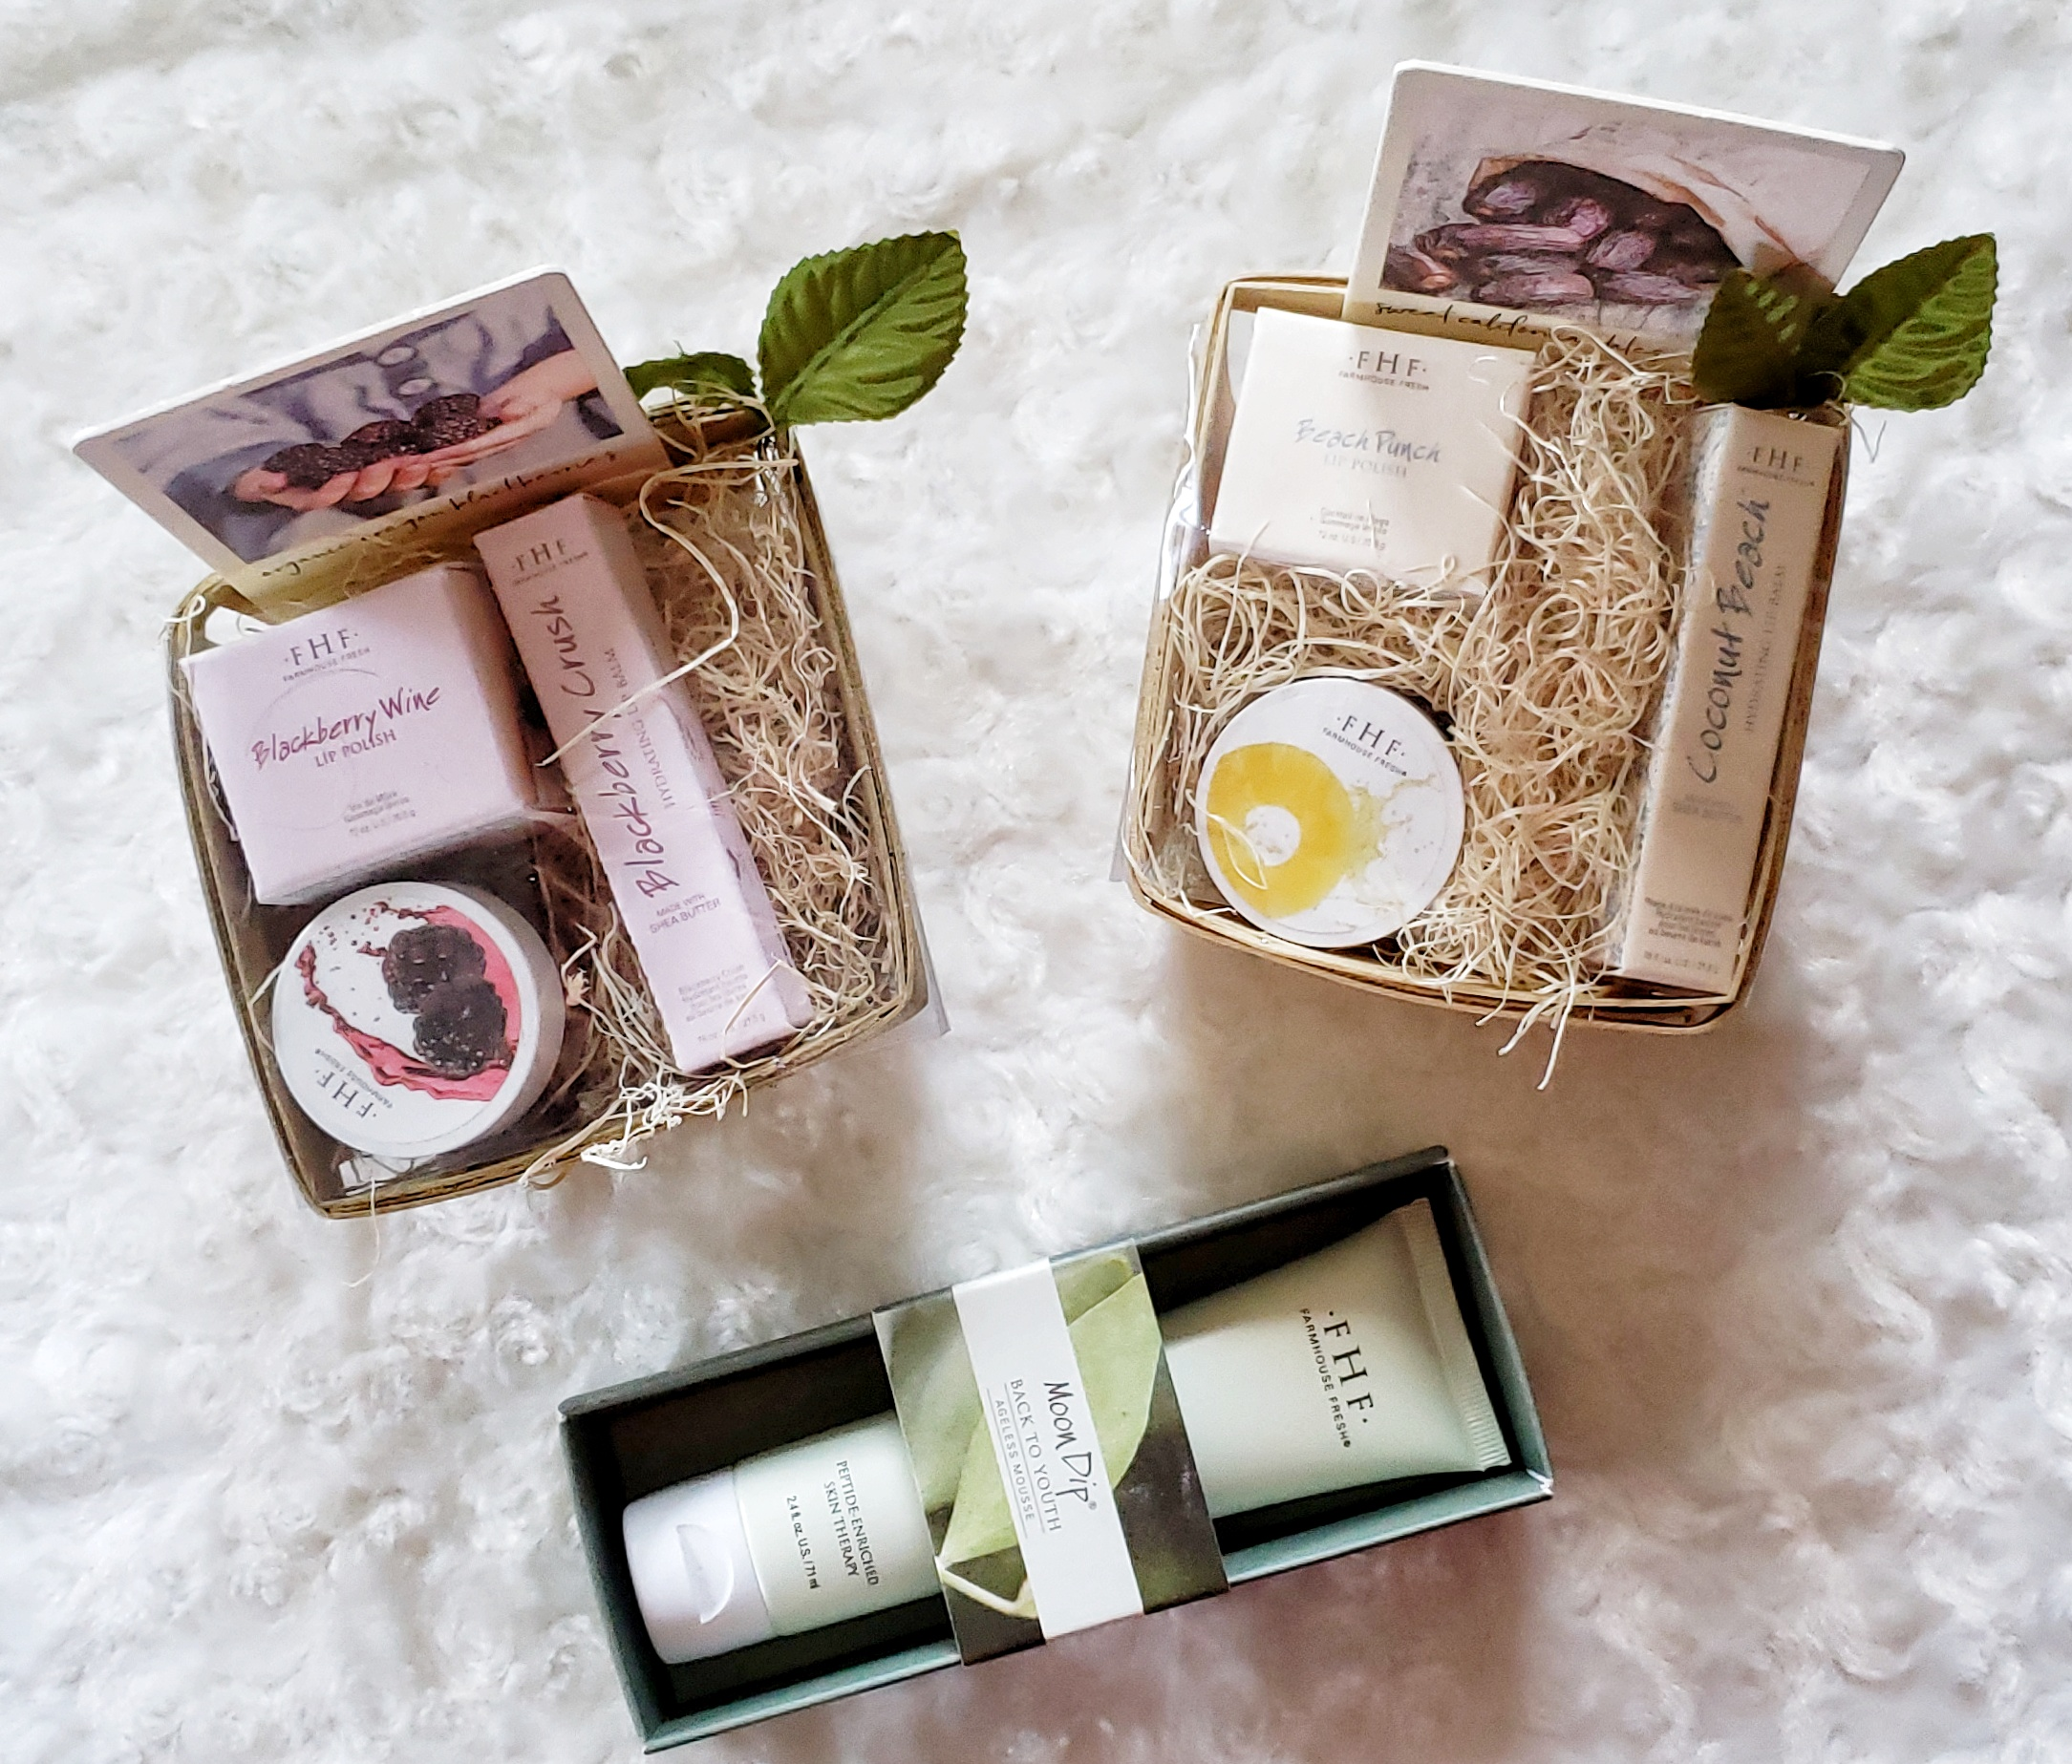 Farmhouse Fresh Body Products Farmhouse Fresh Products Give The Gift Of Deliciously Fresh Skin